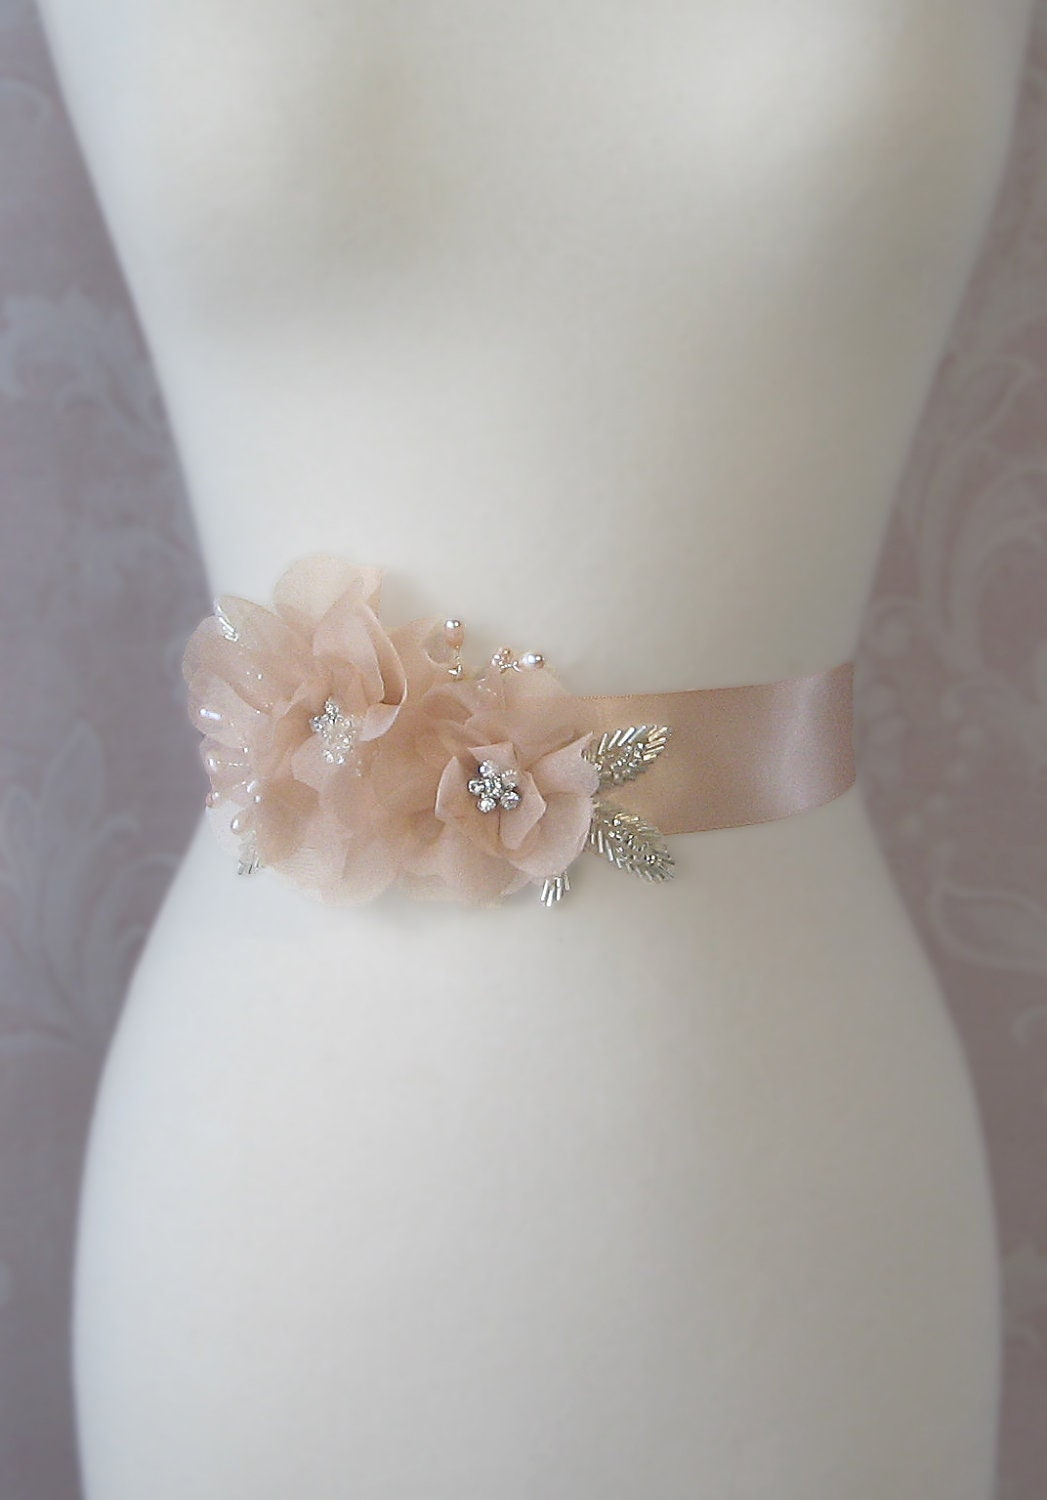 Peach Sash Peach Blush Bridal Sash Wedding Belt Rhinestone